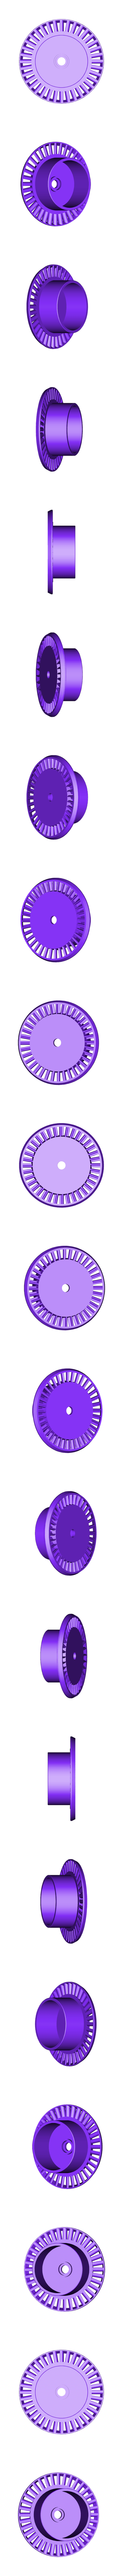 PT-01-Rotor101.stl Download STL file Propfan Engine, Pusher Type using with Planetary Gearbox • 3D printer template, konchan77